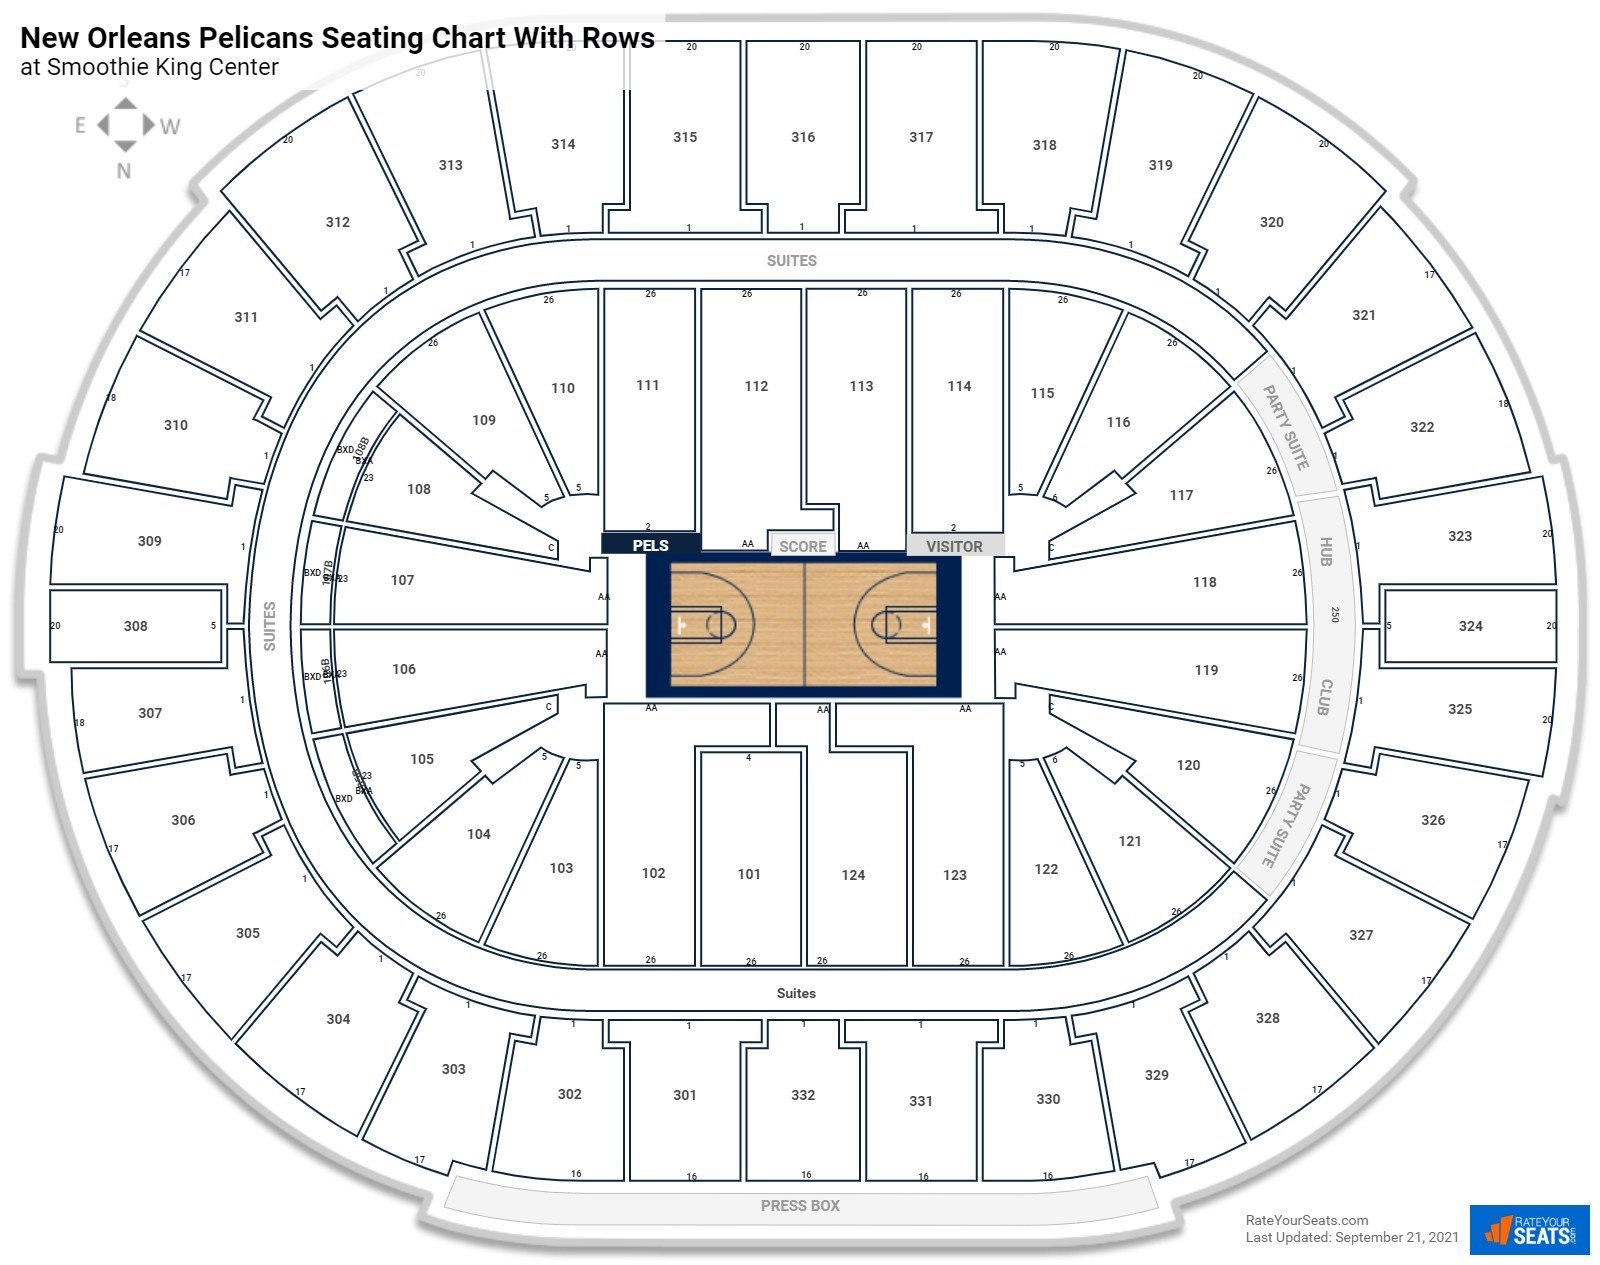 Smoothie King Center seating chart with rows basketball